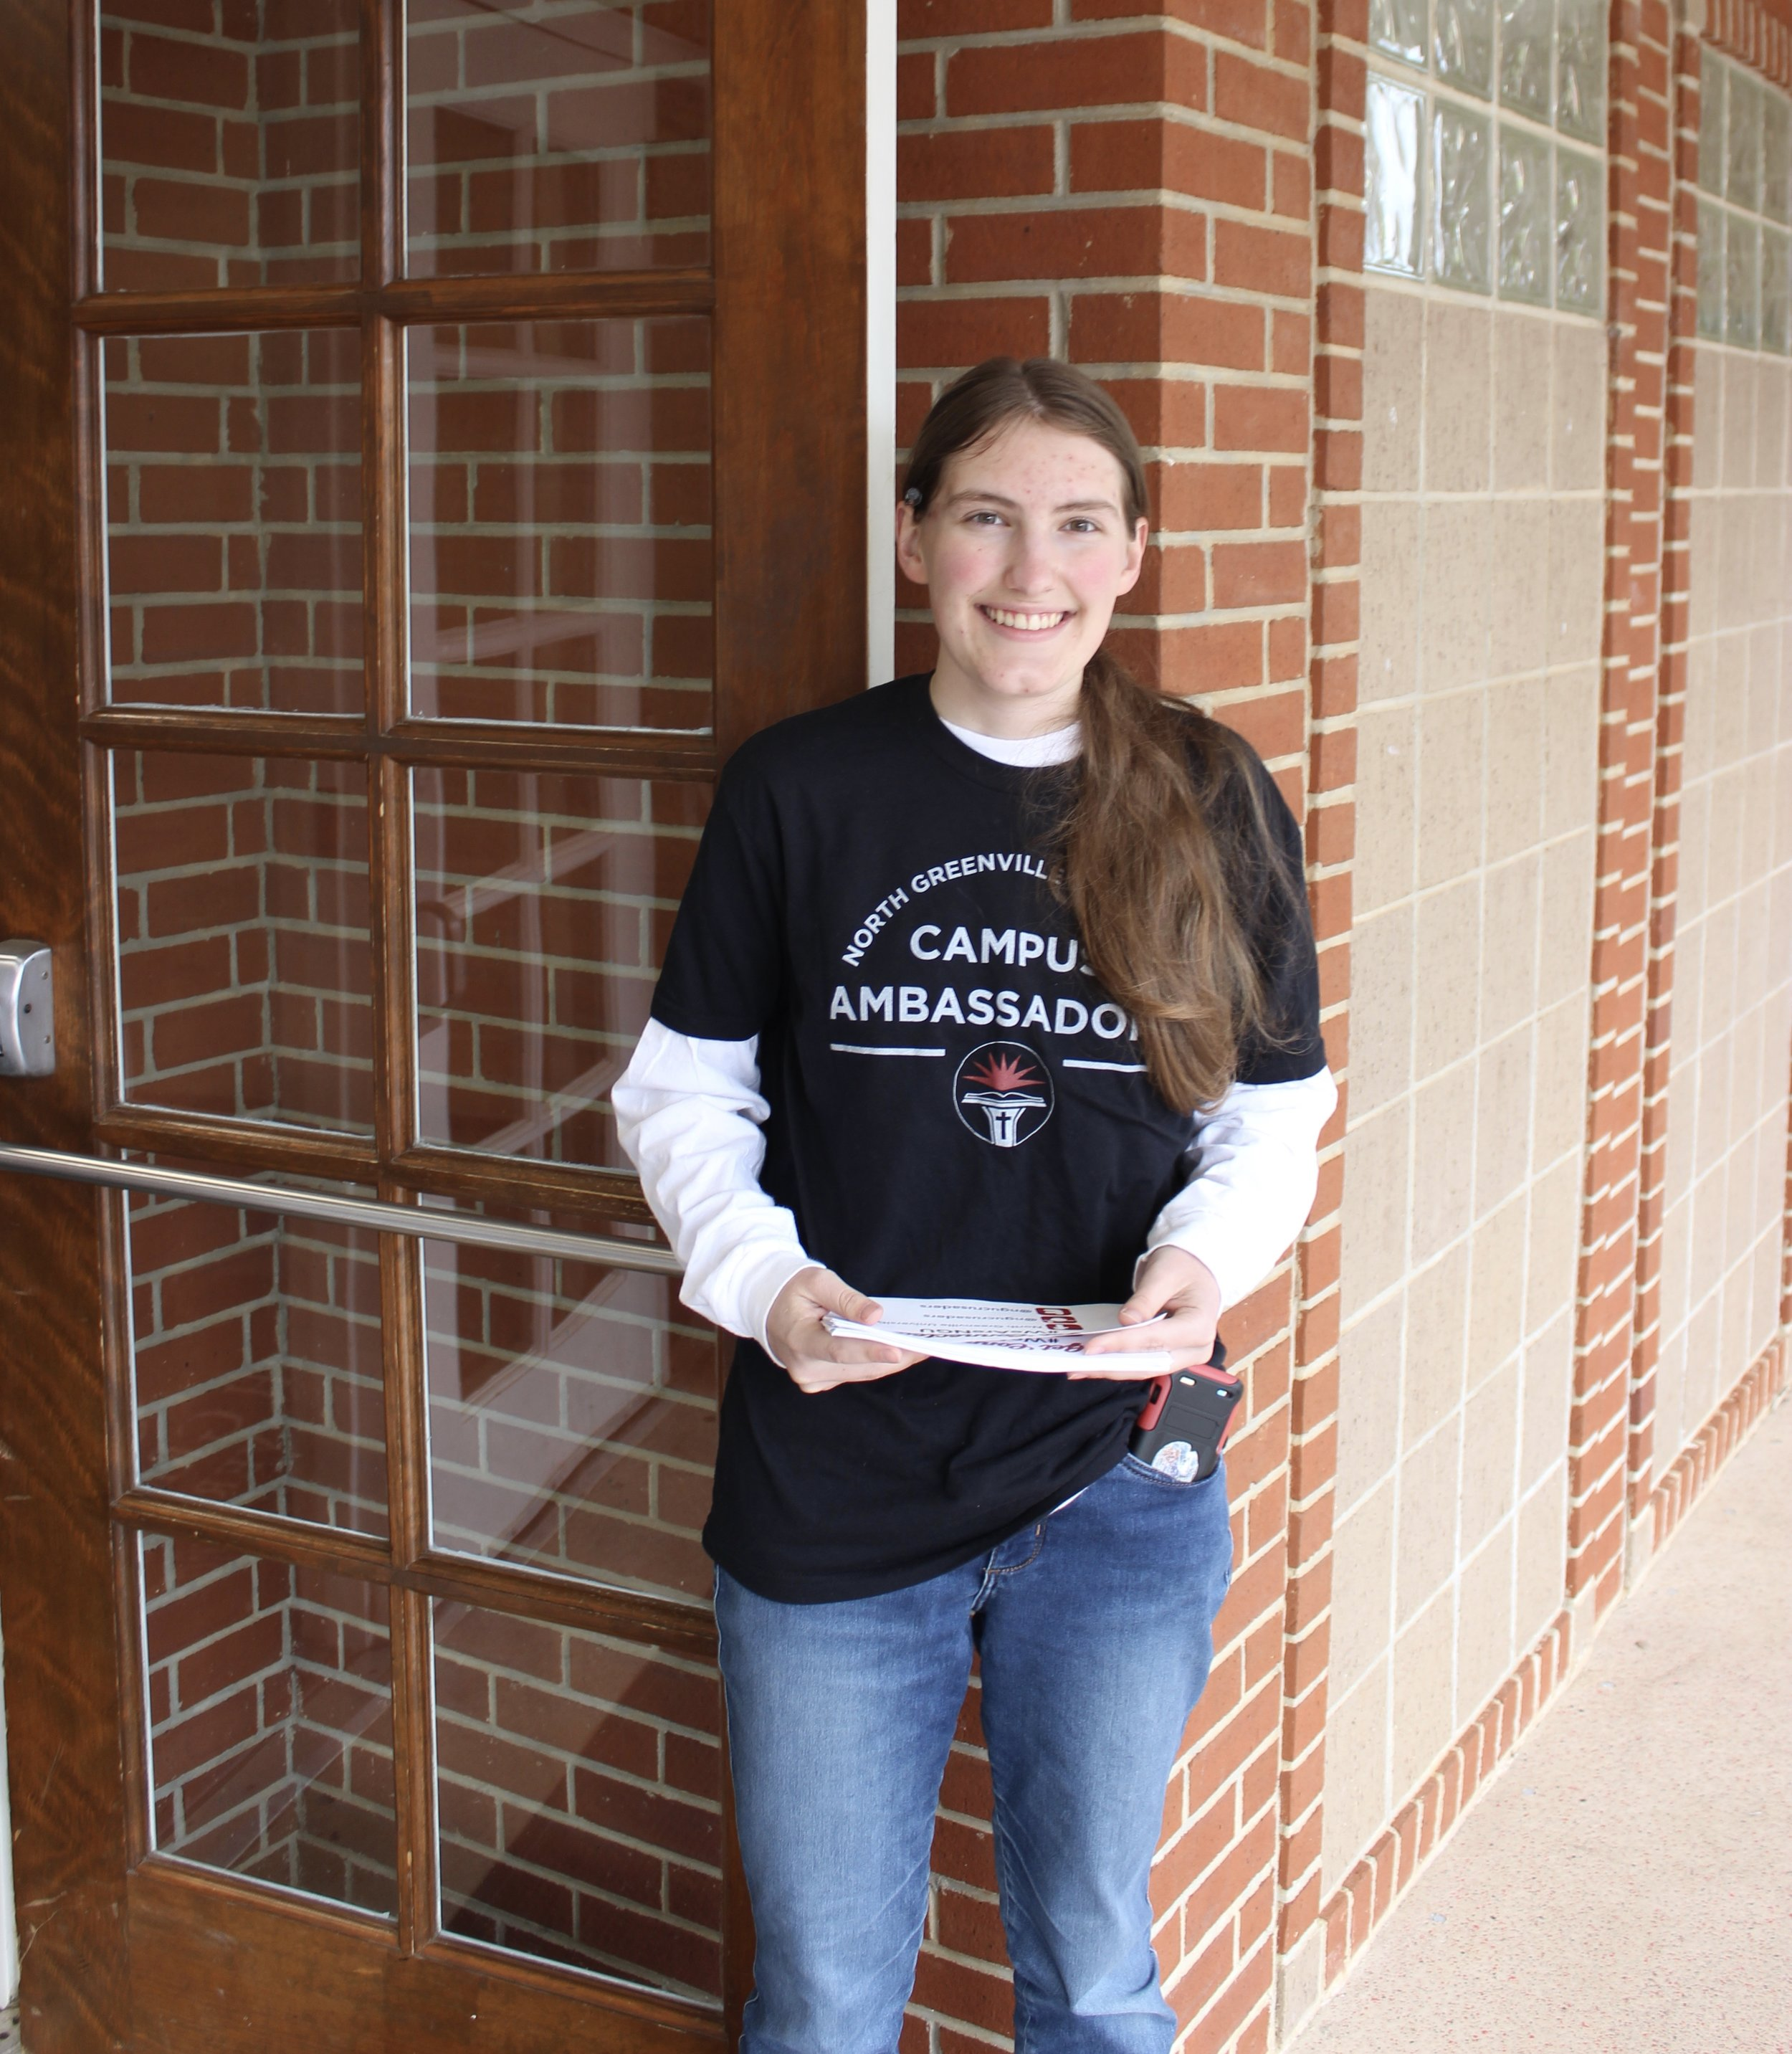 The open house was made a success through the hardworking and welcoming  campus ambassadors  such as Karley Conklin.